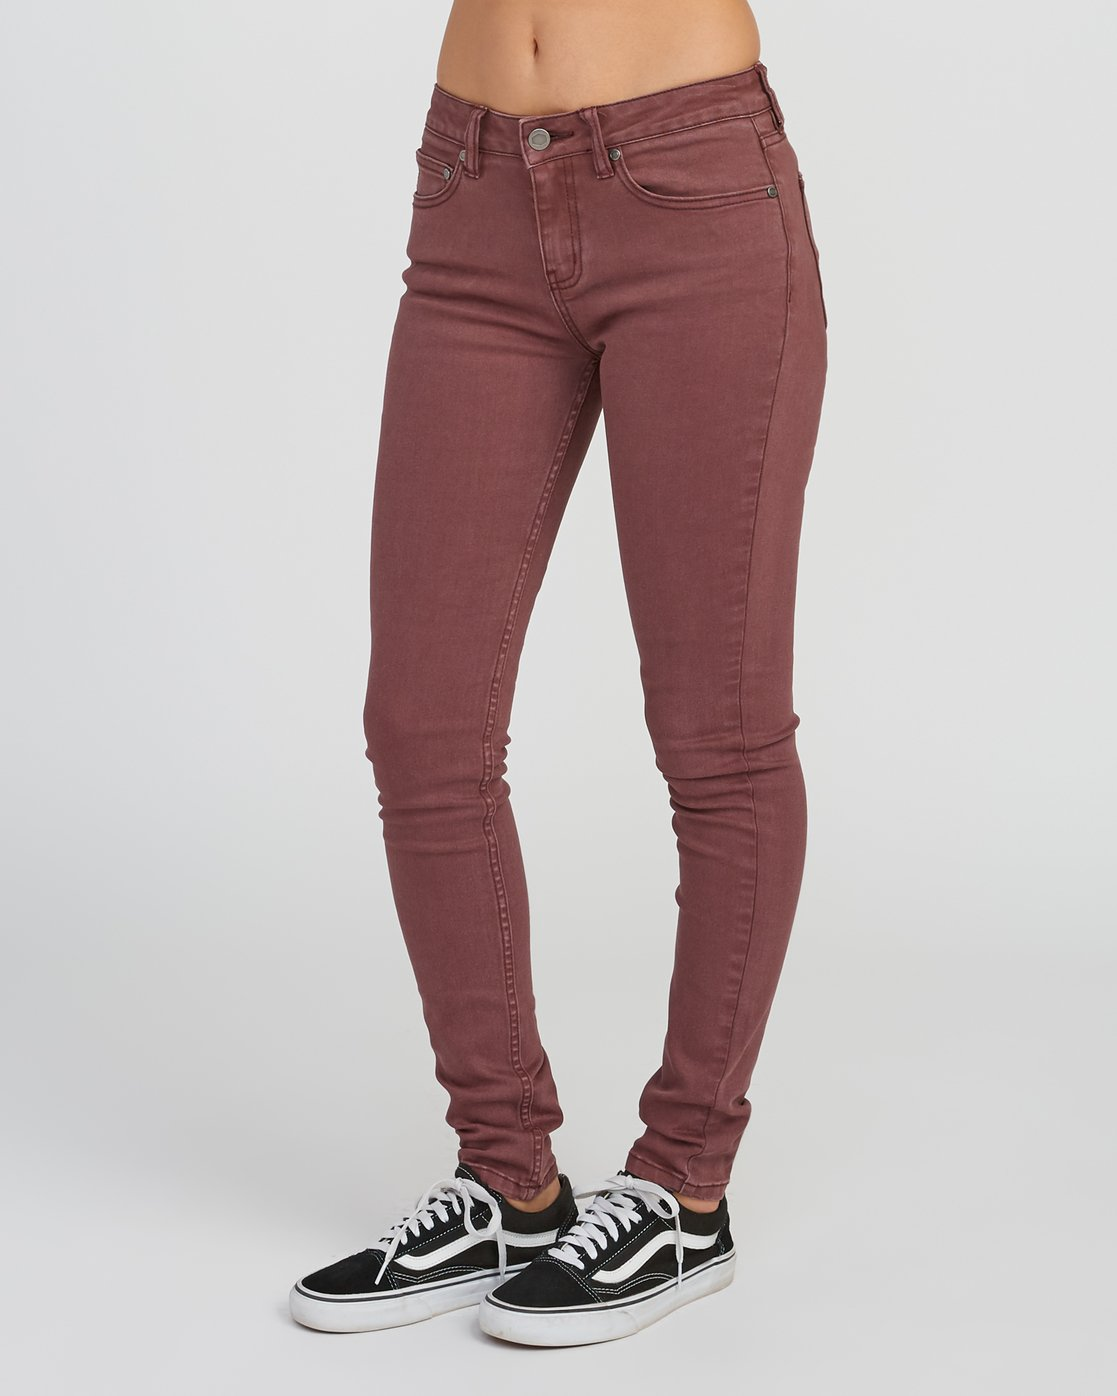 1 Dayley Mid Rise Denim Jeans Pink WCDP02DA RVCA